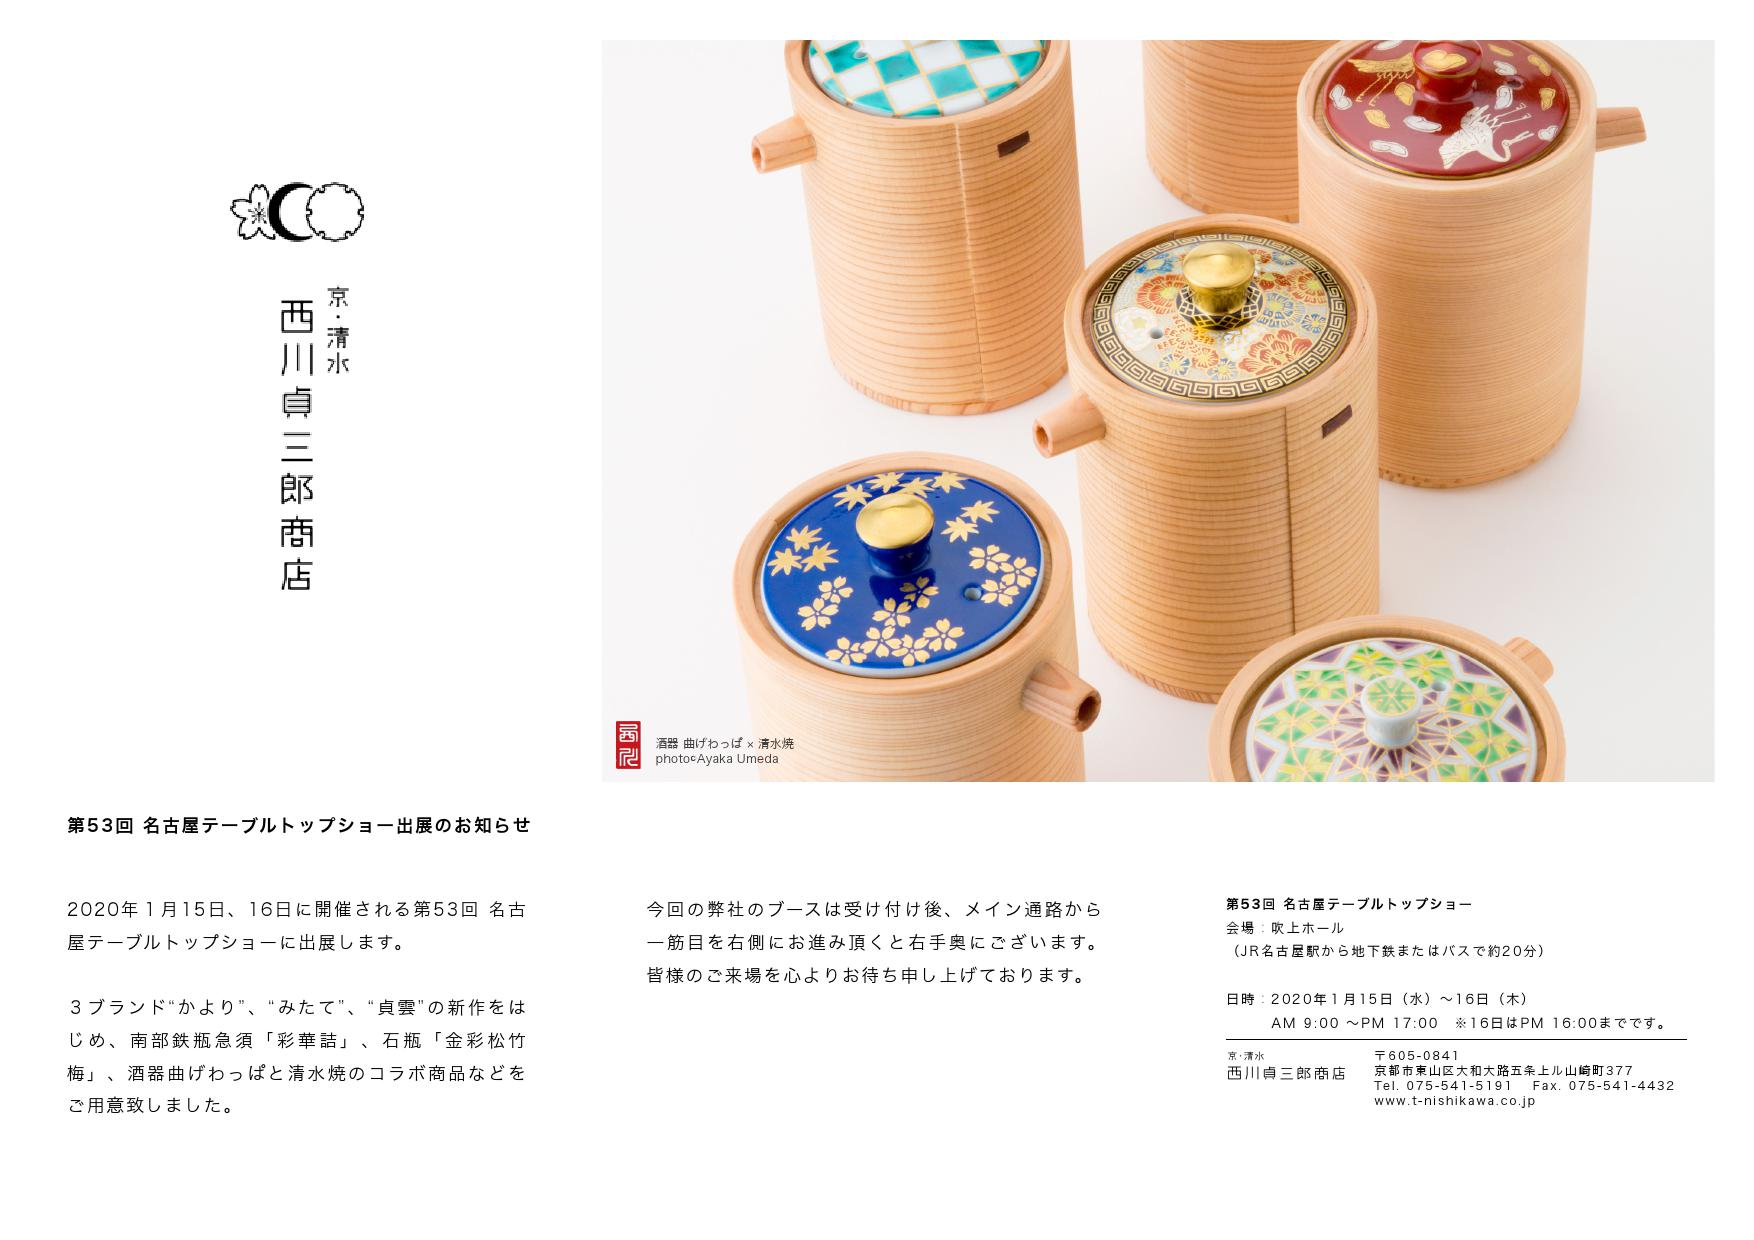 IMG: Exhibition to be held in Fukiage Hall from January 15th to 16th